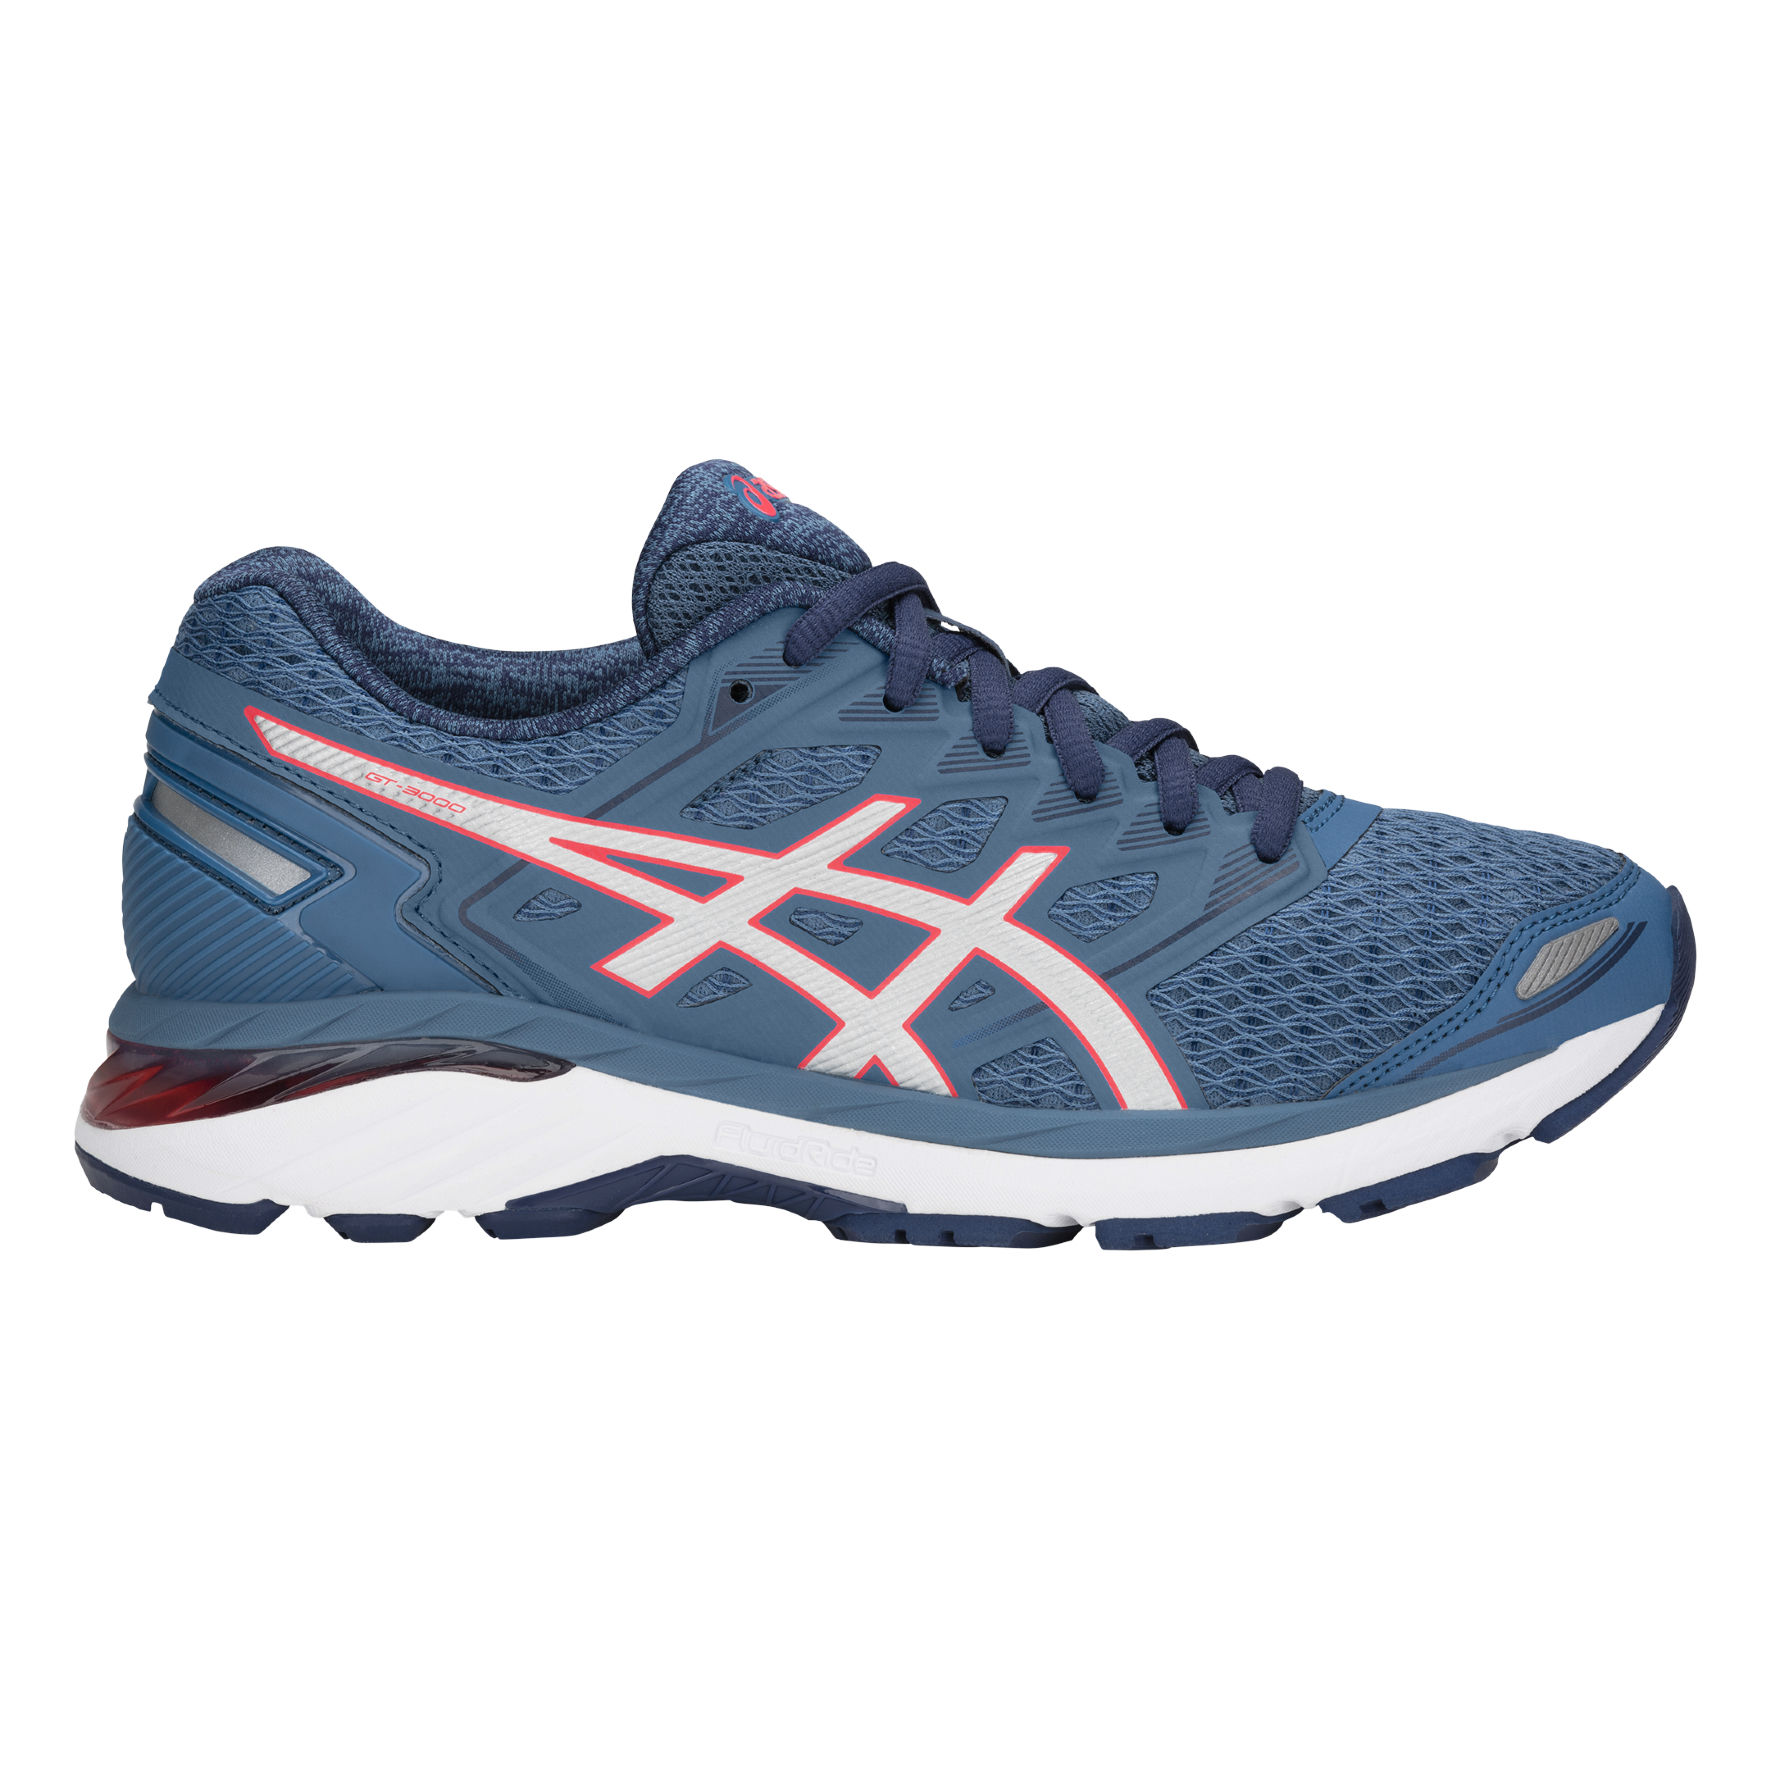 Asics Lady GT 3000 5 in Blau